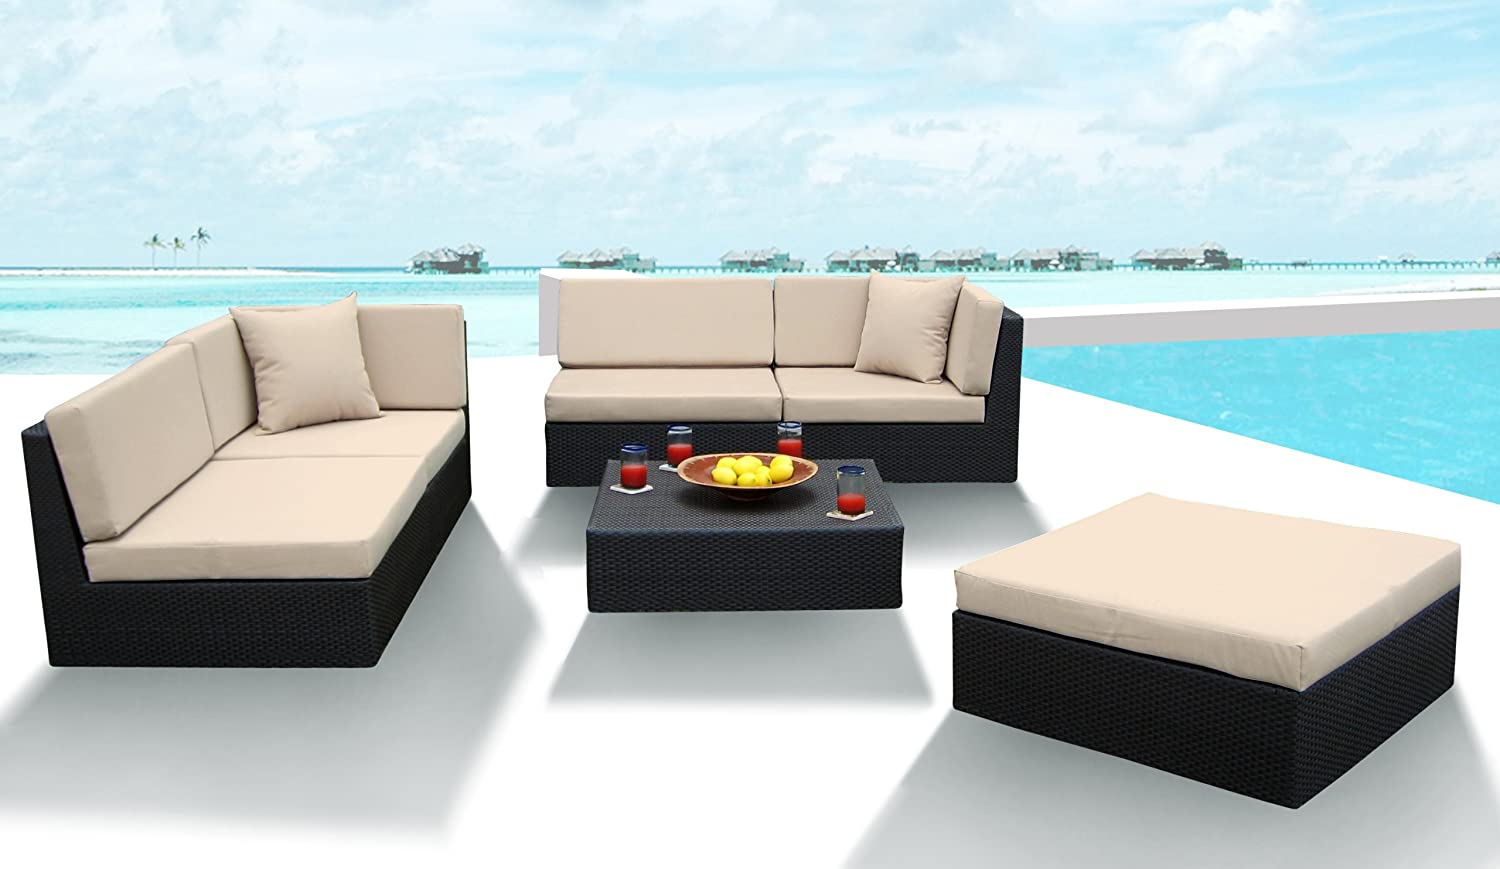 Marvelous Amazon.com : Outdoor Wicker Furniture New All Weather PE Resin 6pc Patio  Deep Seating Sectional Sofa Set. : Outdoor And Patio Furniture Sets : Garden  U0026 ...